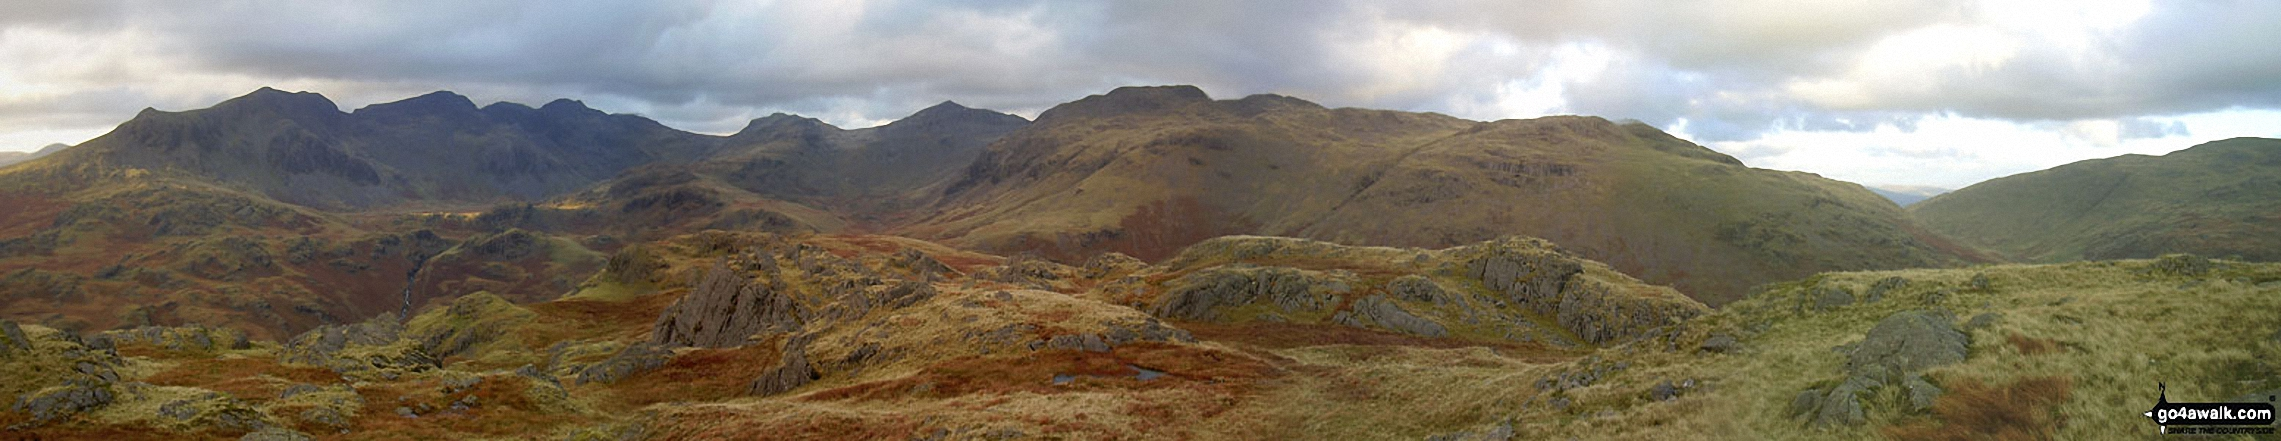 From left to right: Slight Side and Sca Fell, Mickledore, Scafell Pike, Ill Crag and Great End, Esk Hause, Esk Pike, Bow Fell (Bowfell), Crinkle Crags (Long Top), Cold Pike, Little Stand and finally the shoulder of Grey Friar from the summit of Hard Knott